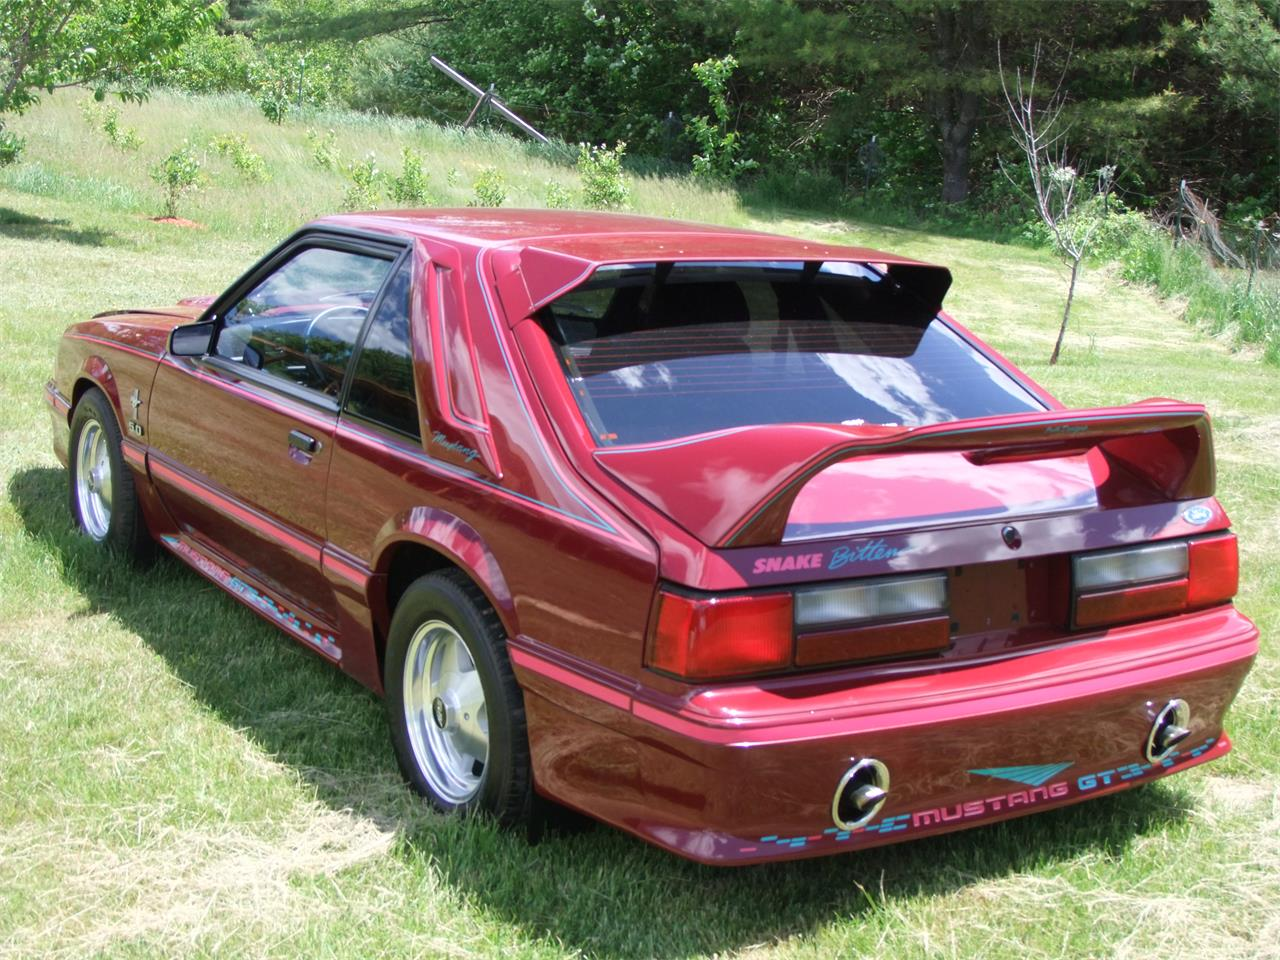 Large Picture of 1989 Ford Mustang GT located in New Hampshire - $15,000.00 Offered by a Private Seller - Q101